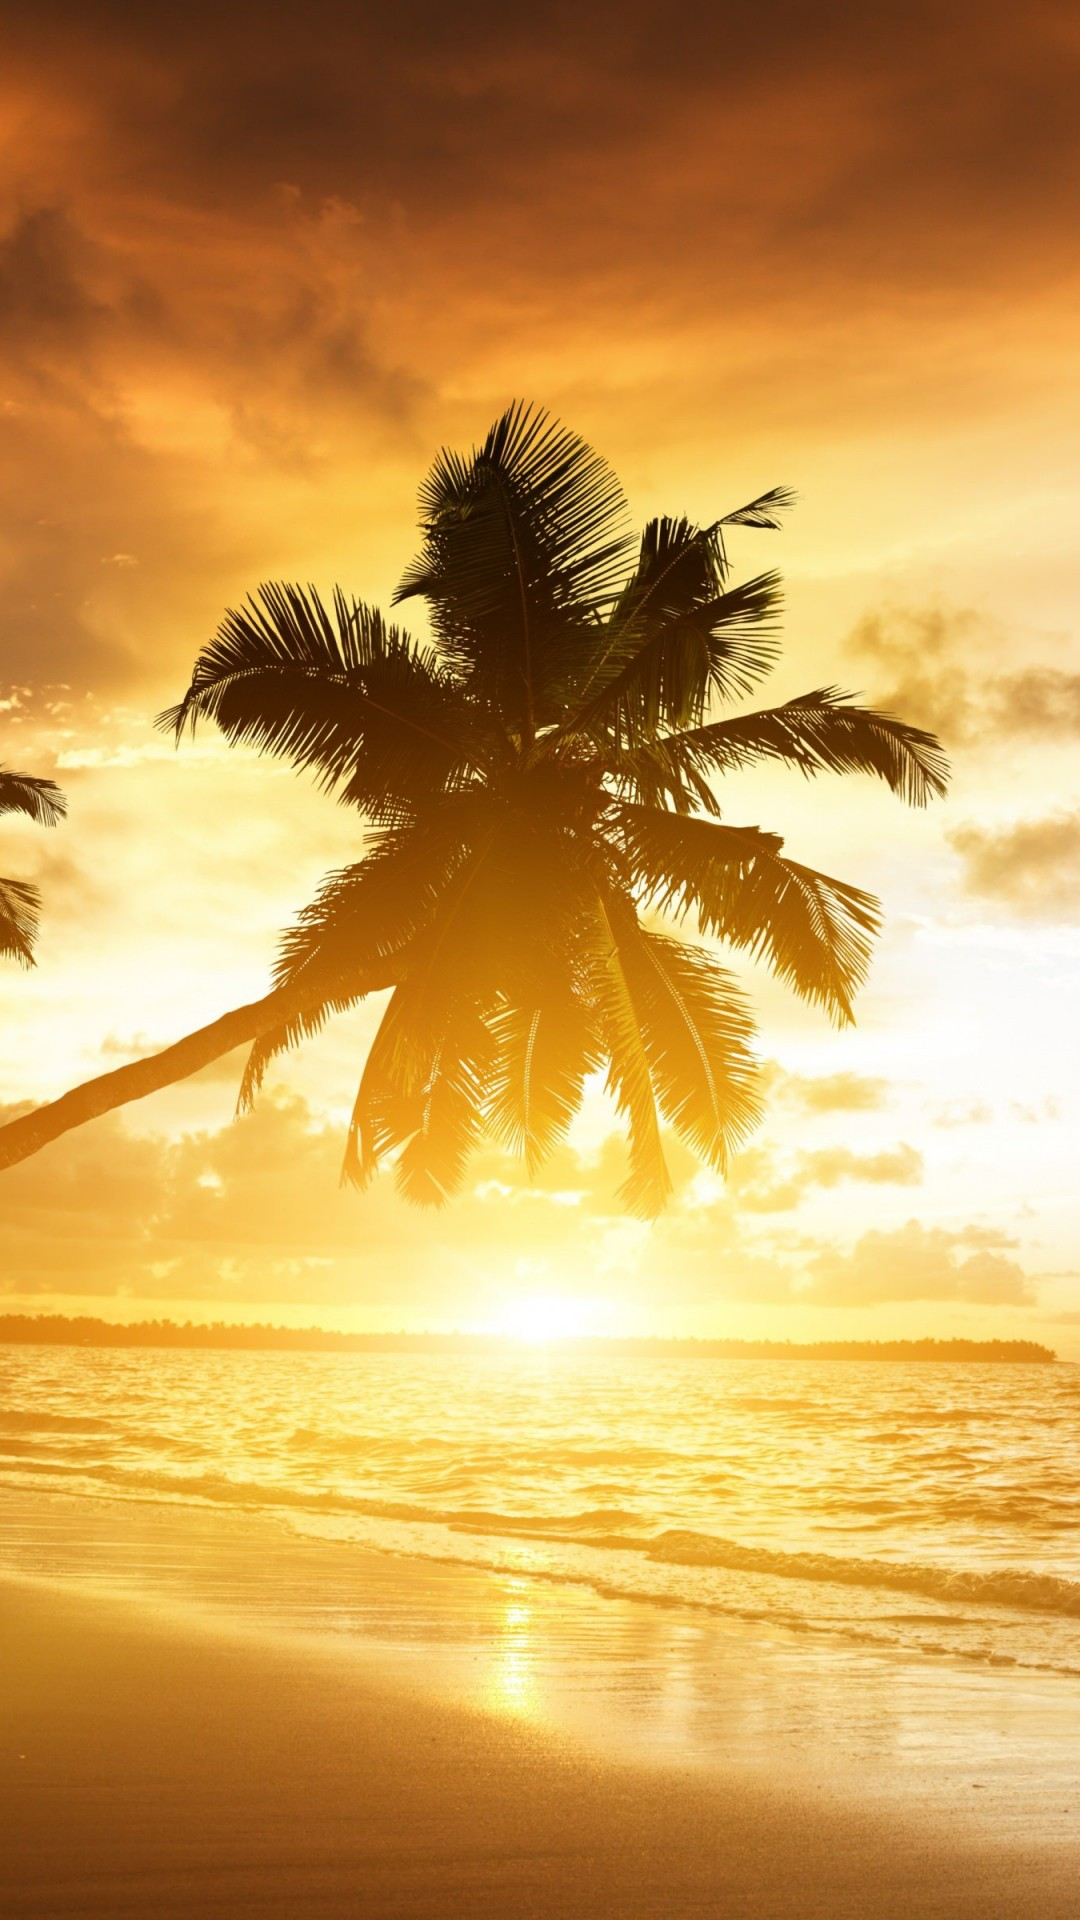 Beach With Palm Trees At Sunset Wallpaper for SONY Xperia Z1